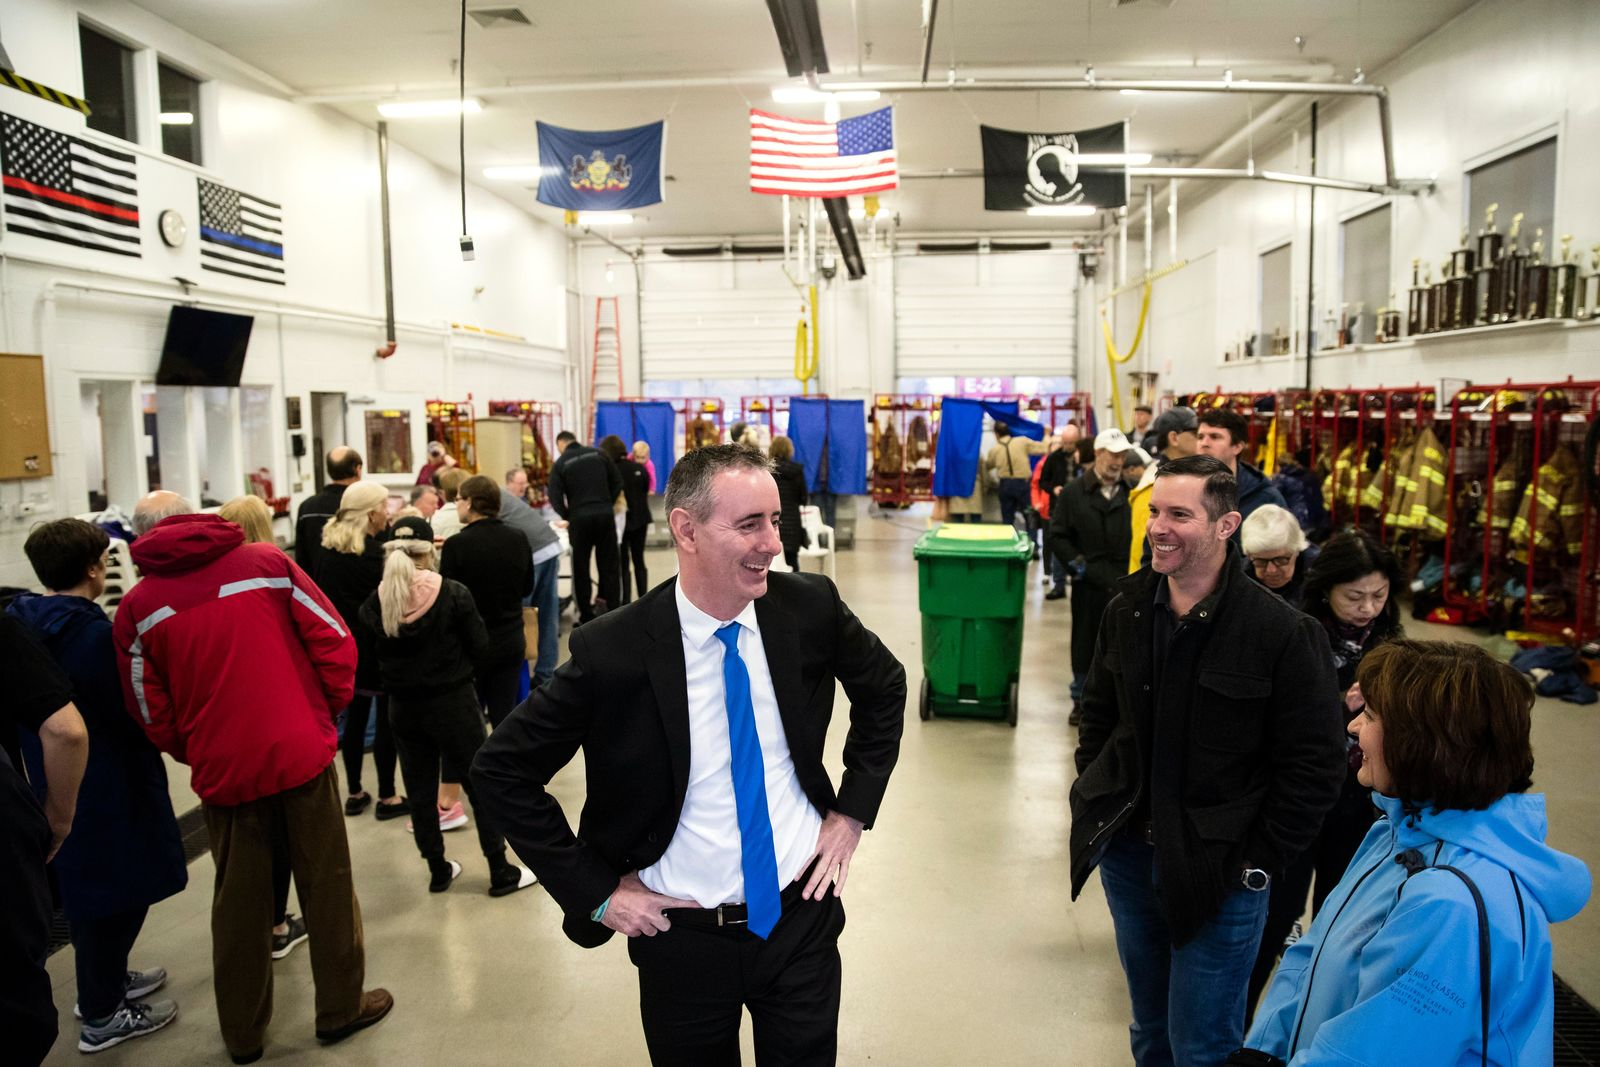 Candidate for Pennsylvania's 1st Congressional District Rep. Brian Fitzpatrick, R-Pa., waits in line to vote in Langhorne, Pa., Tuesday, Nov. 6, 2018. (AP Photo/Matt Rourke)